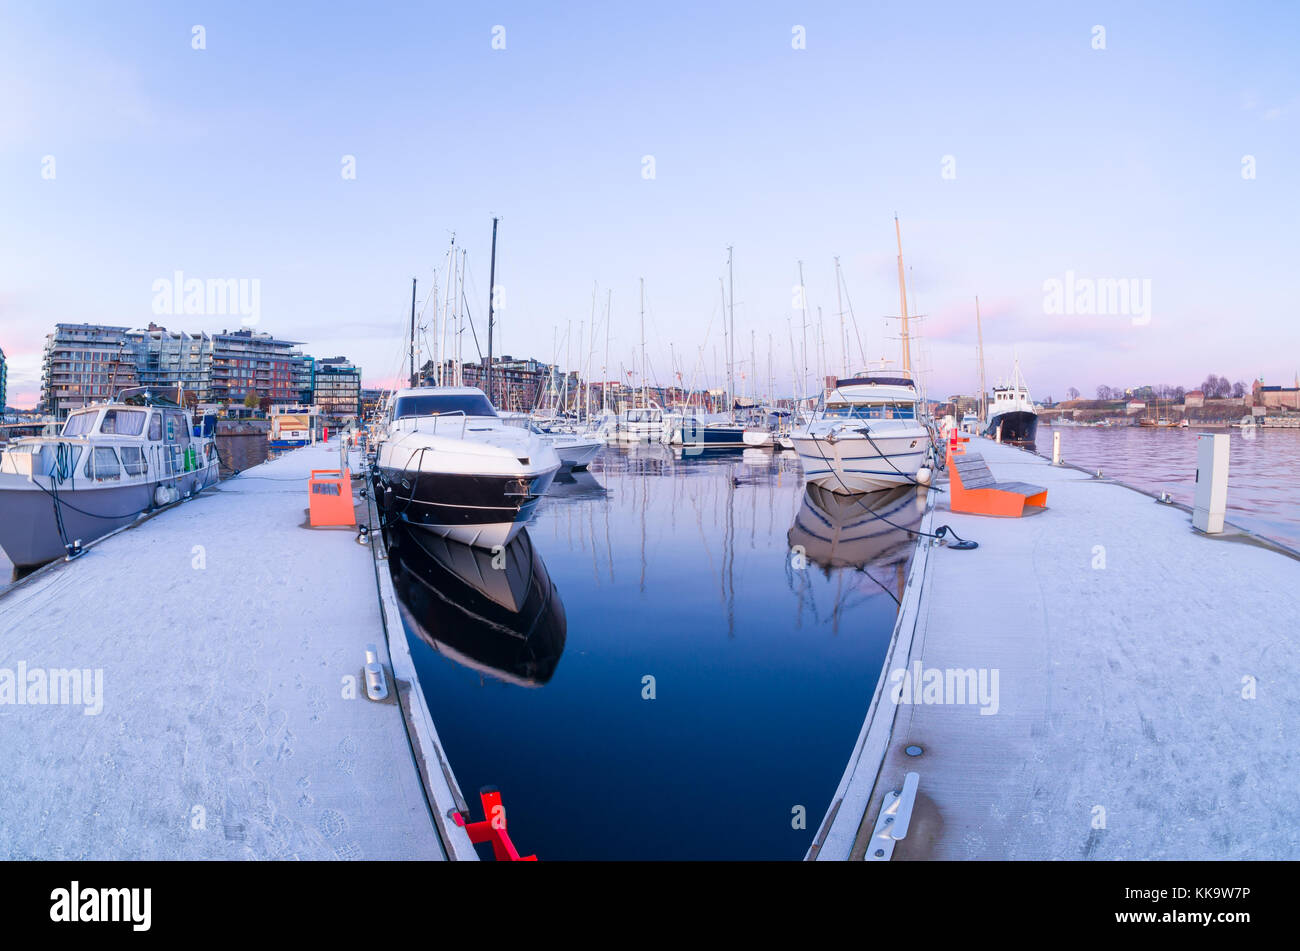 Mirror water inside frosty piers of Aker Brygge Marina in Oslo, Norway, at the beginning of the winter. - Stock Image